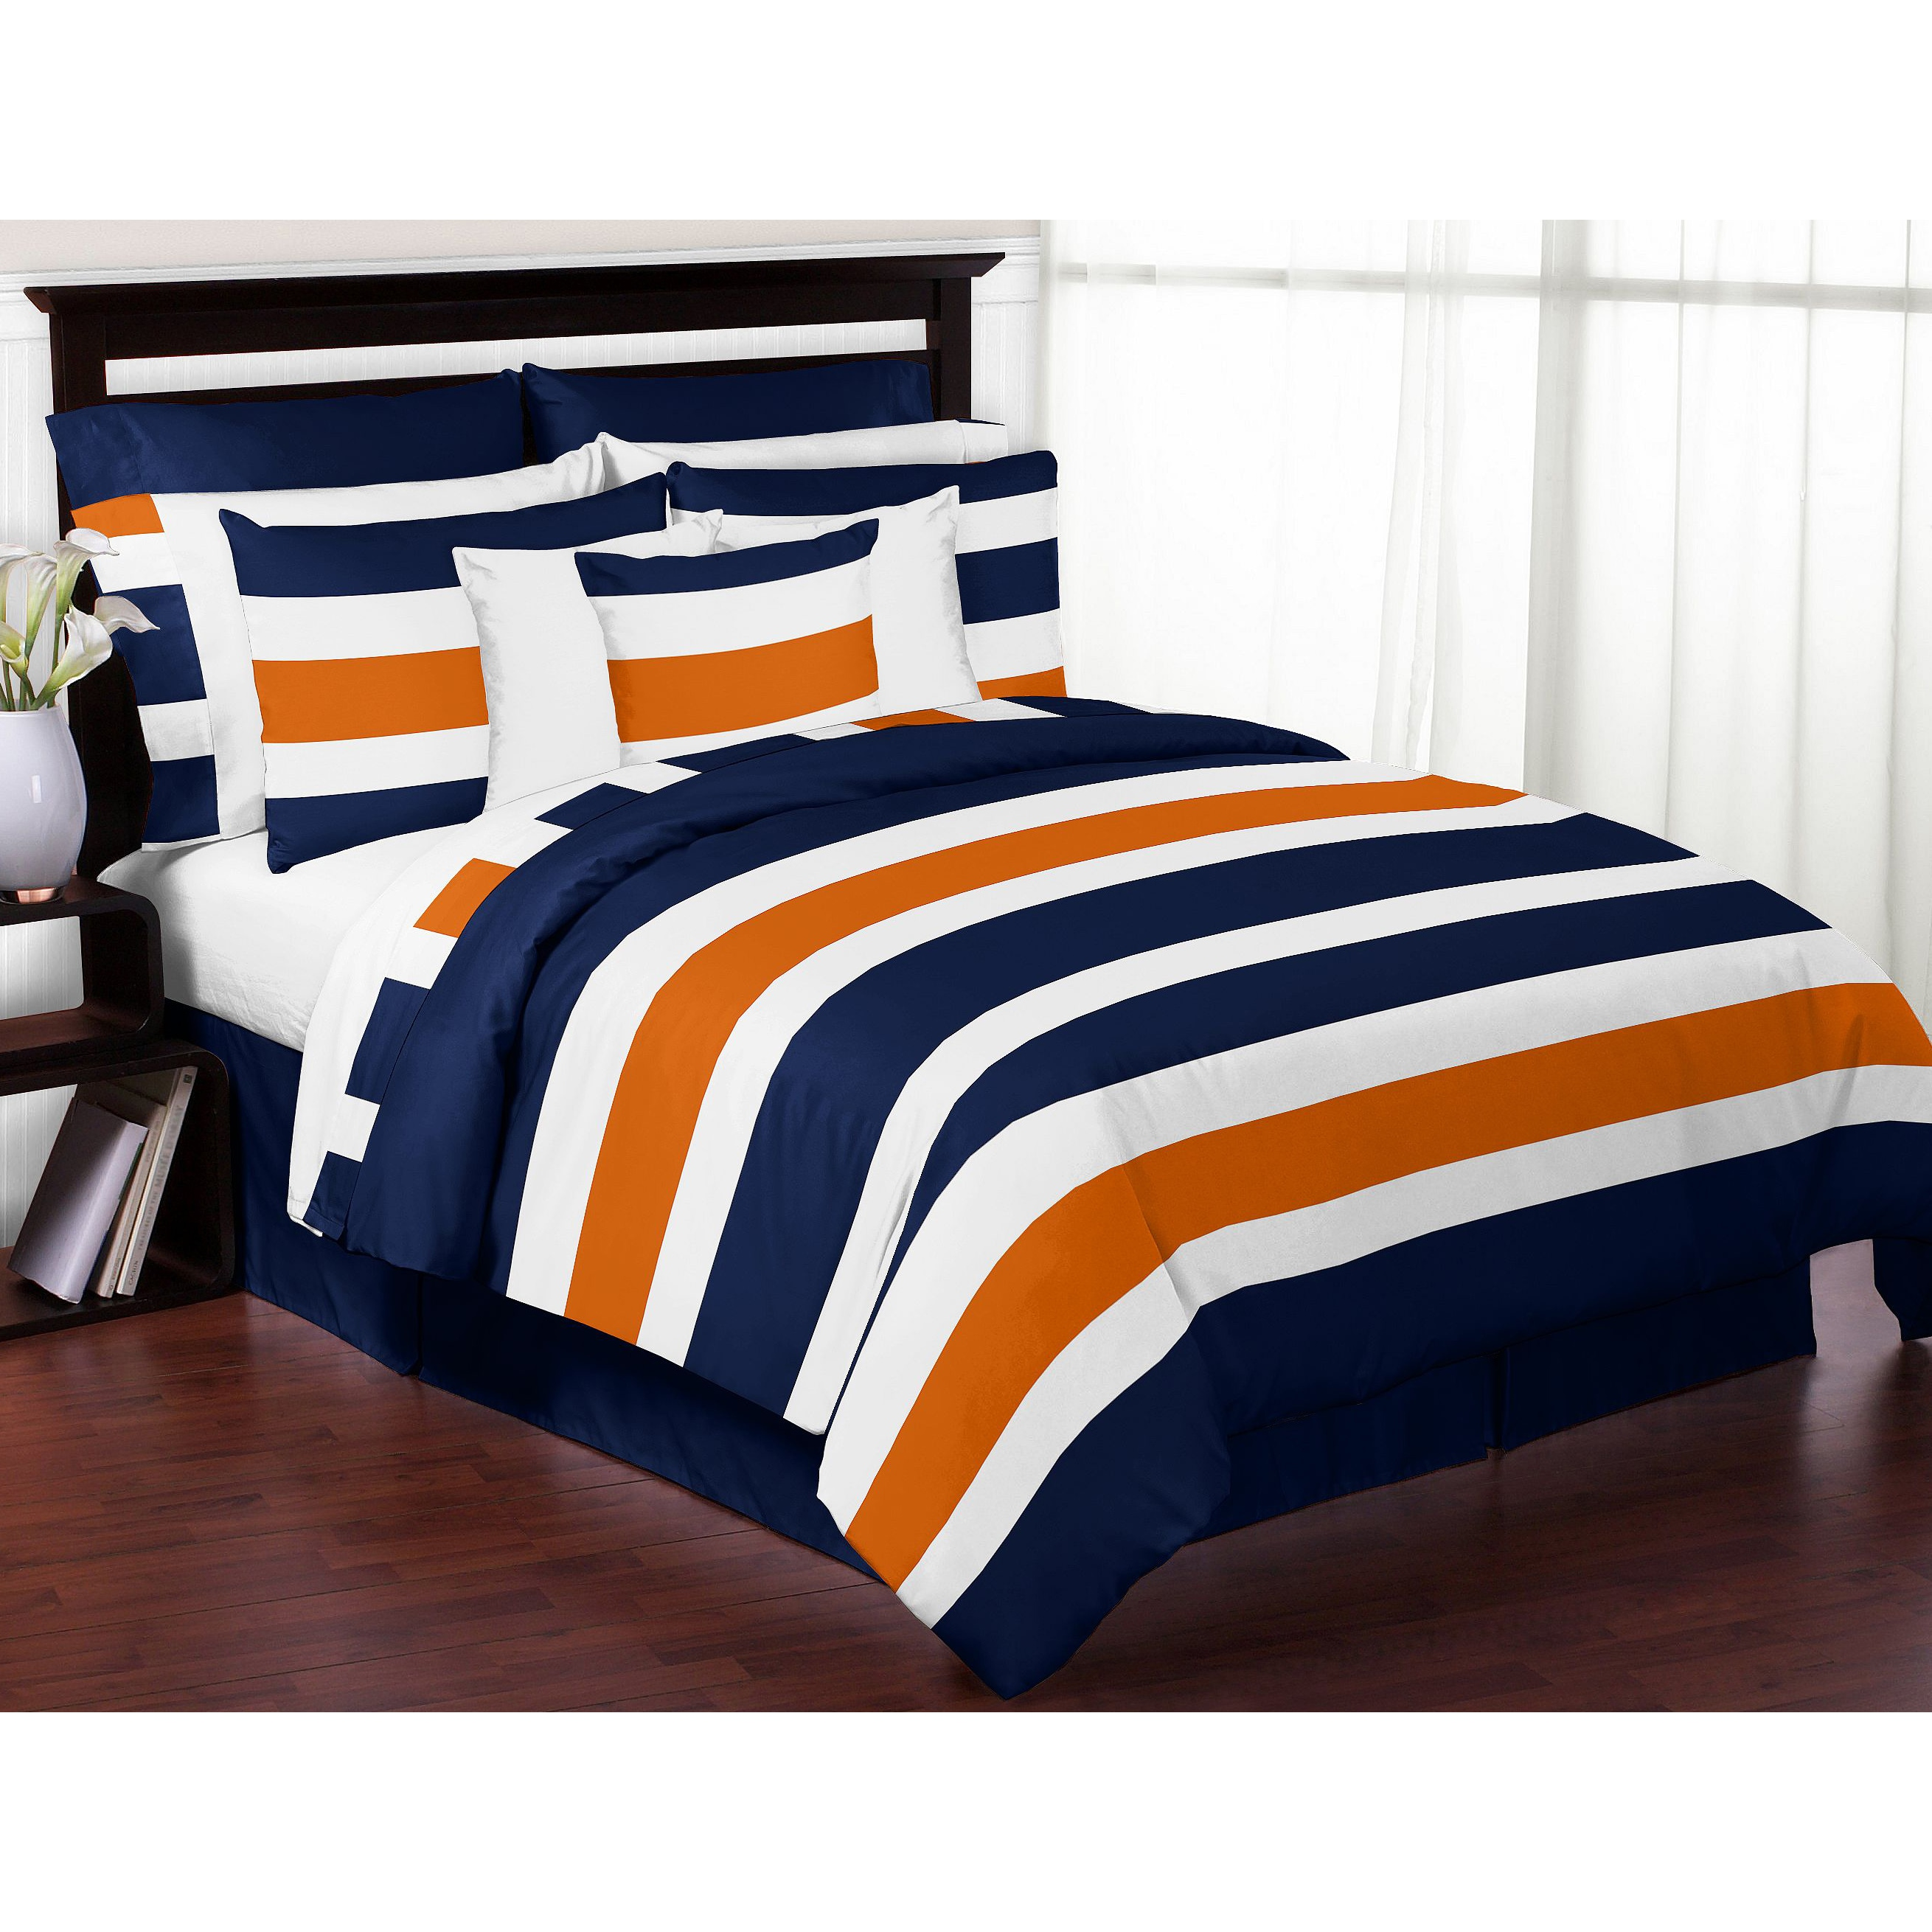 queen sets angeloferrer down comforter com orange blue